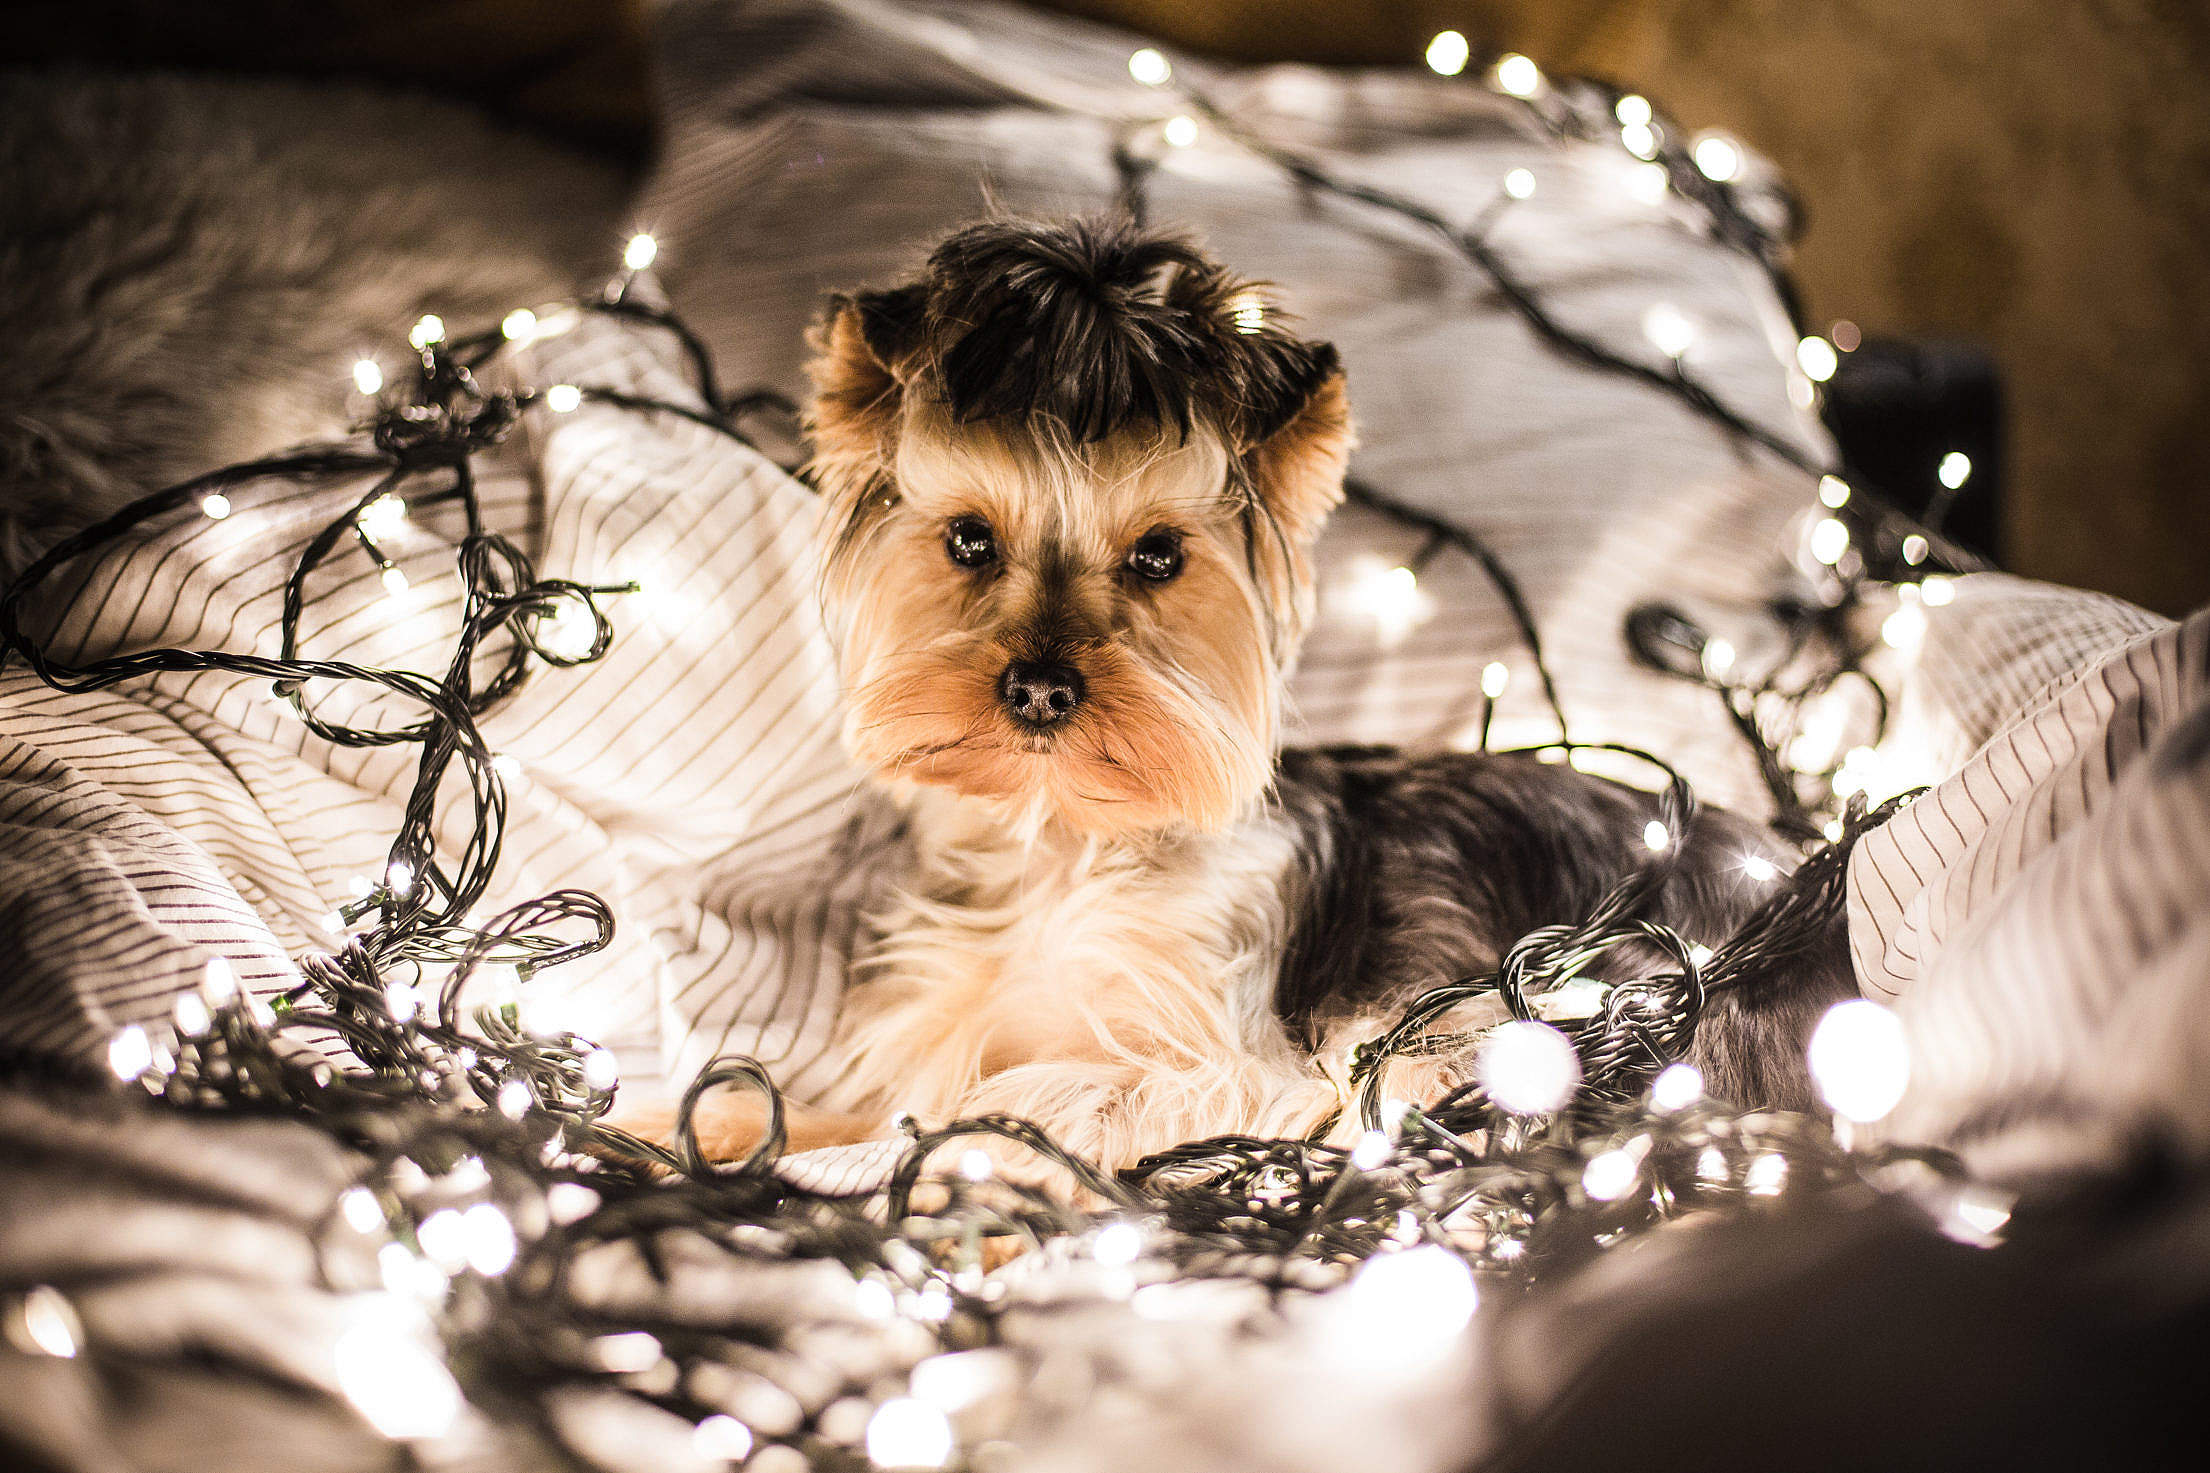 Download Cute Jessie The Dog in Christmas Lights Free Stock Photo